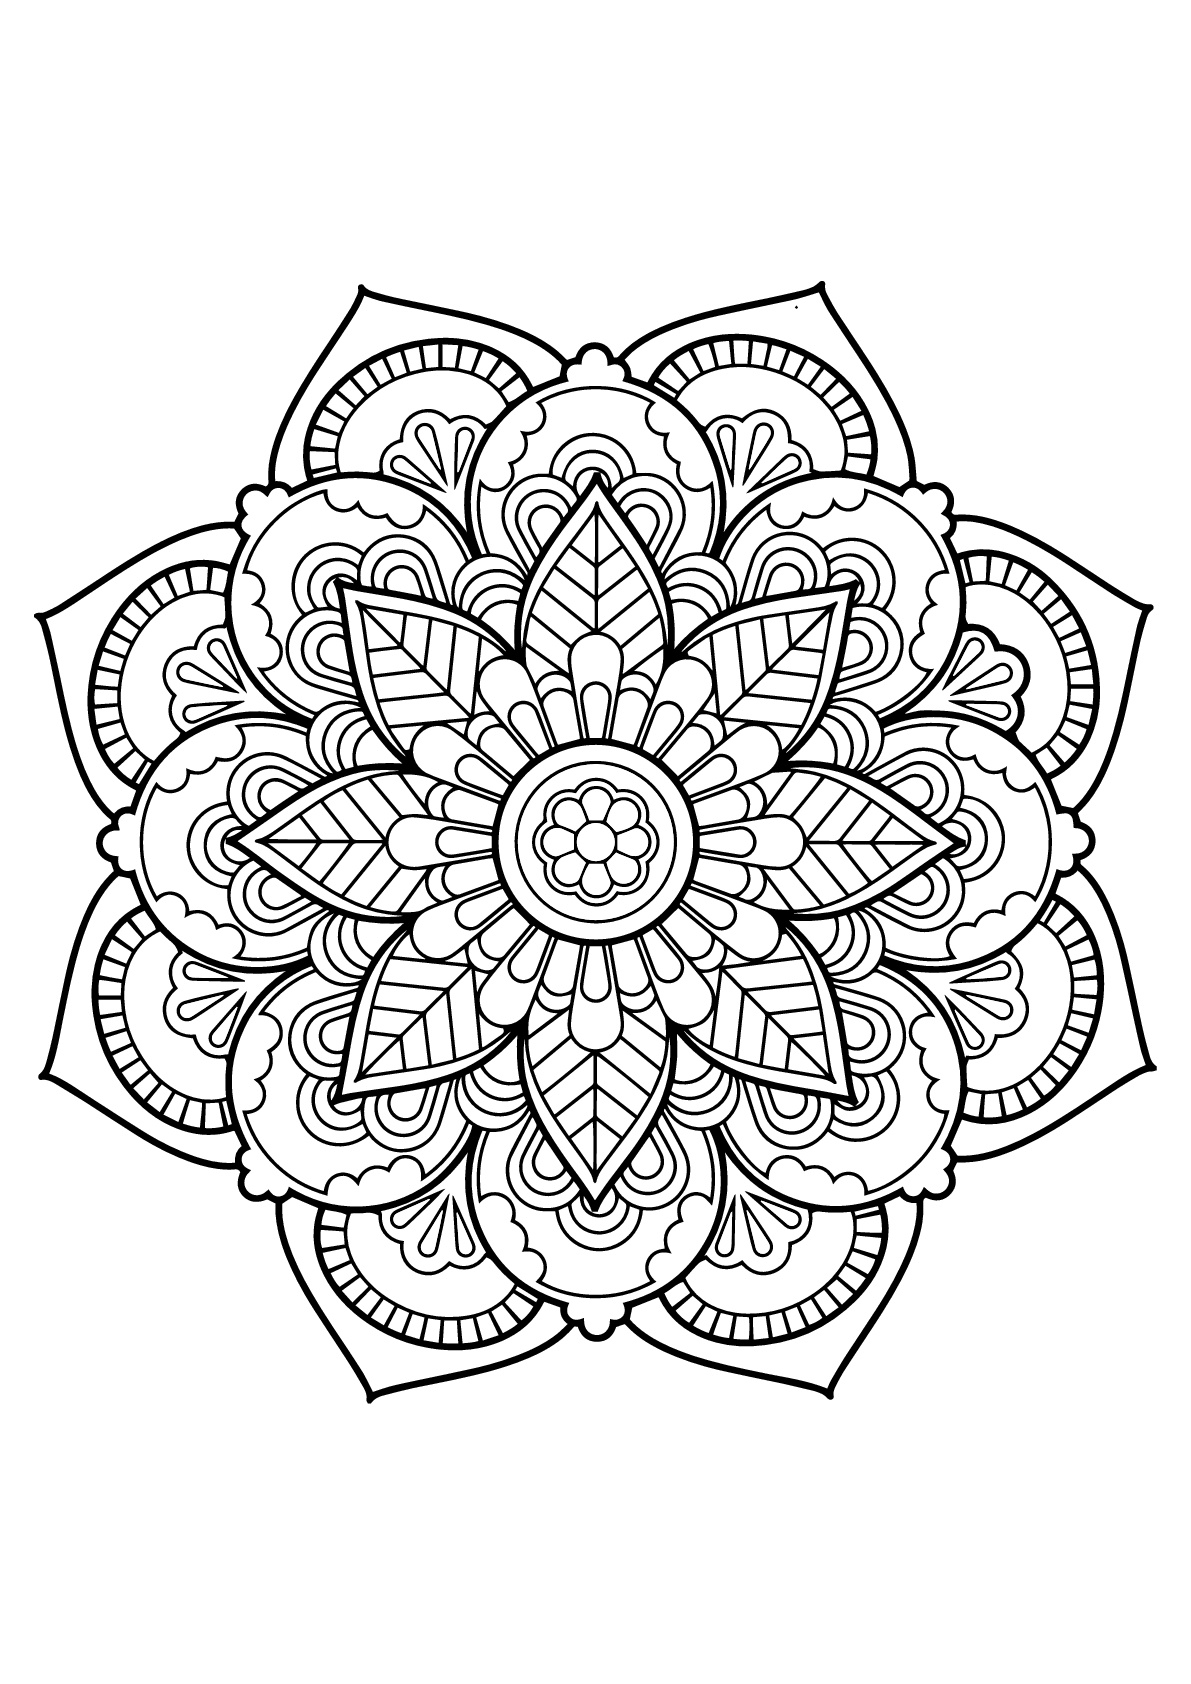 mandalas to color for adults mandala from free coloring books for adults 22 malas color mandalas to for adults